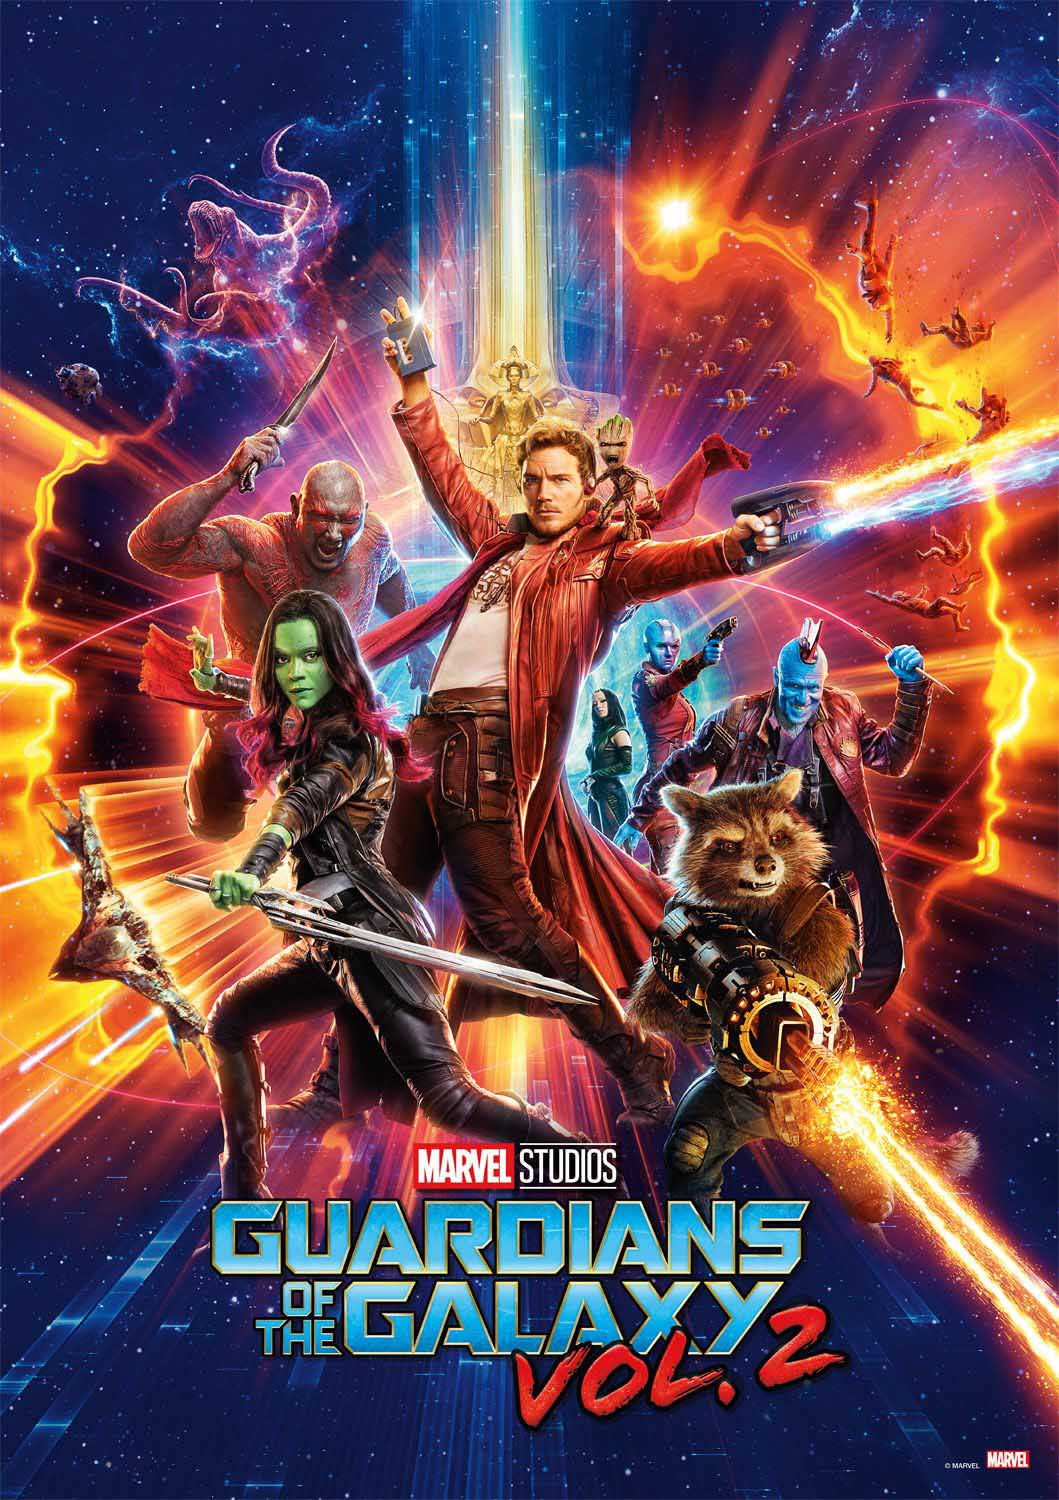 Guardians of the Galaxy Vol. 2 Movies / Books / TV Jigsaw Puzzle